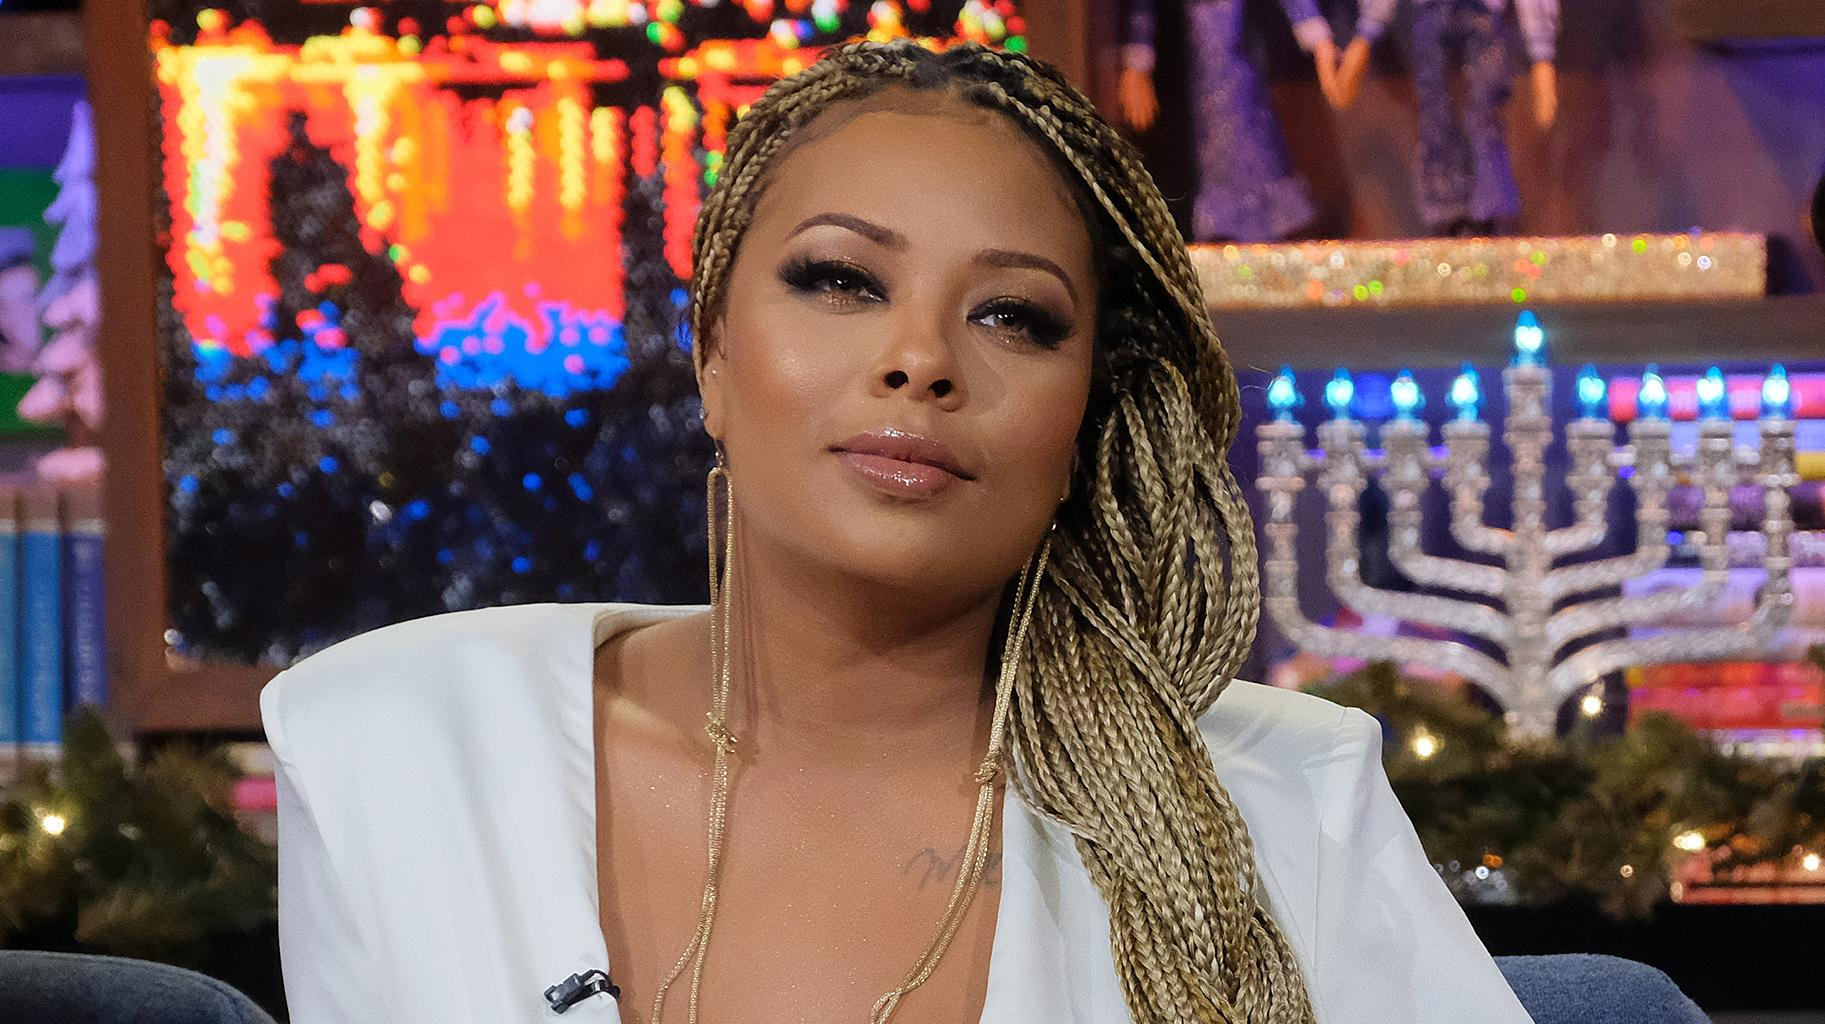 Eva Marcille's Video Featuring Her Daughter, Marley Rae, Makes Fans Smile